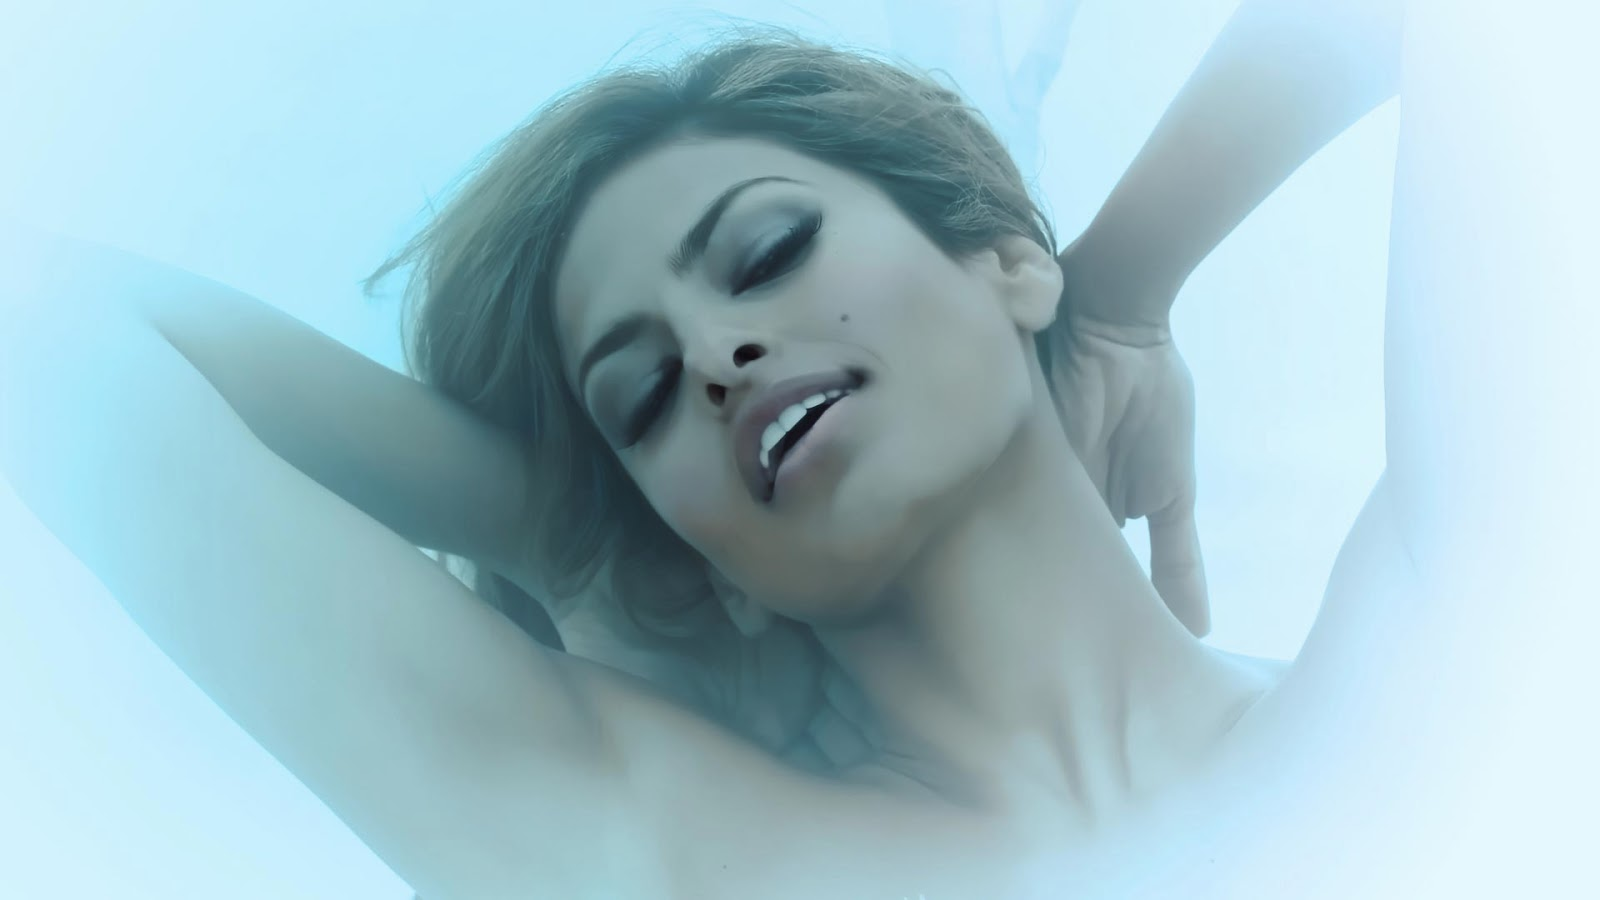 Eva mendes hottest animation wallpaper